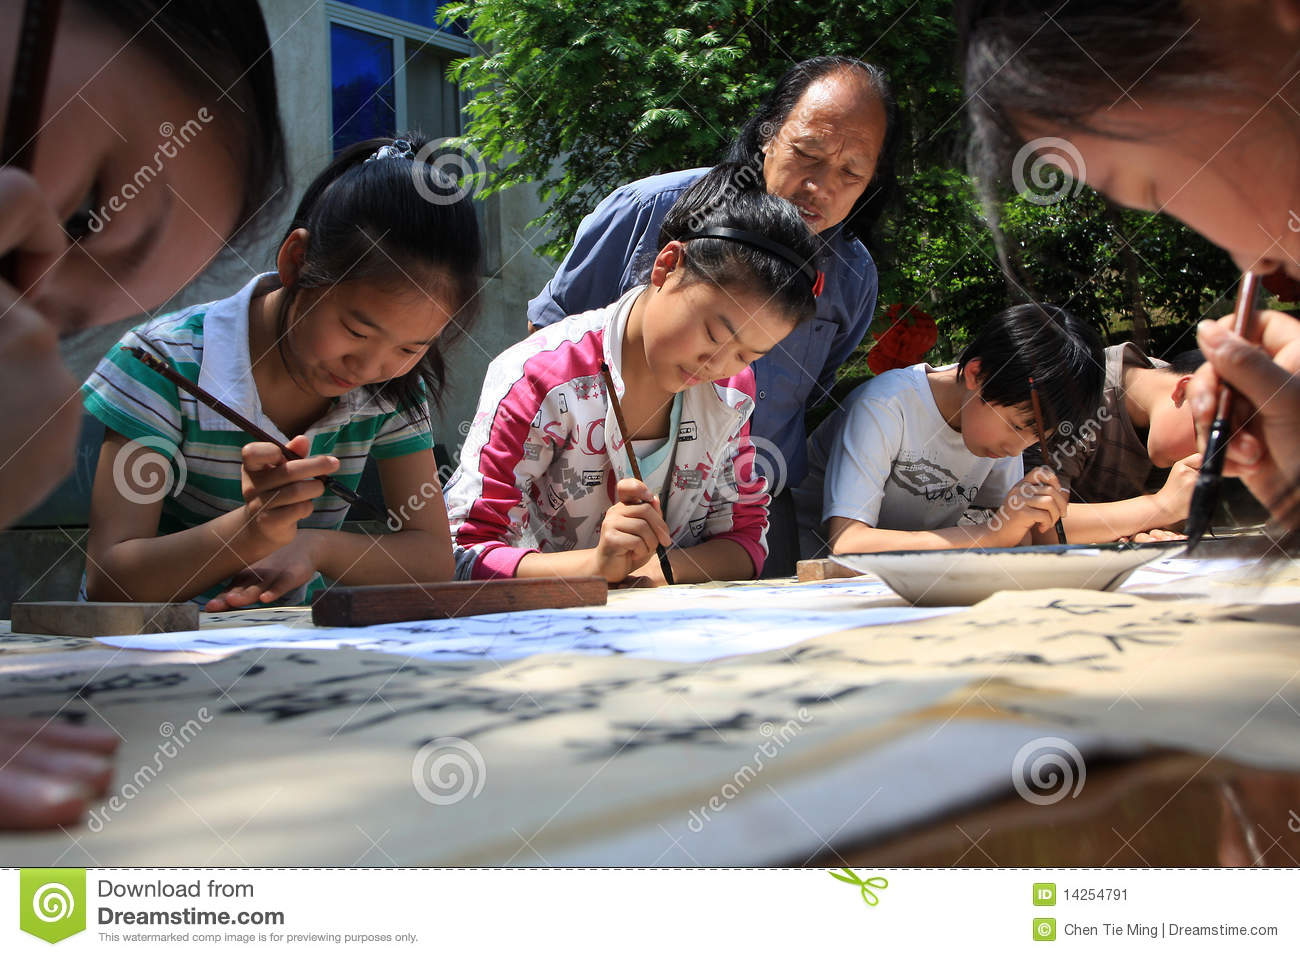 Chinese primary school students in learning callig